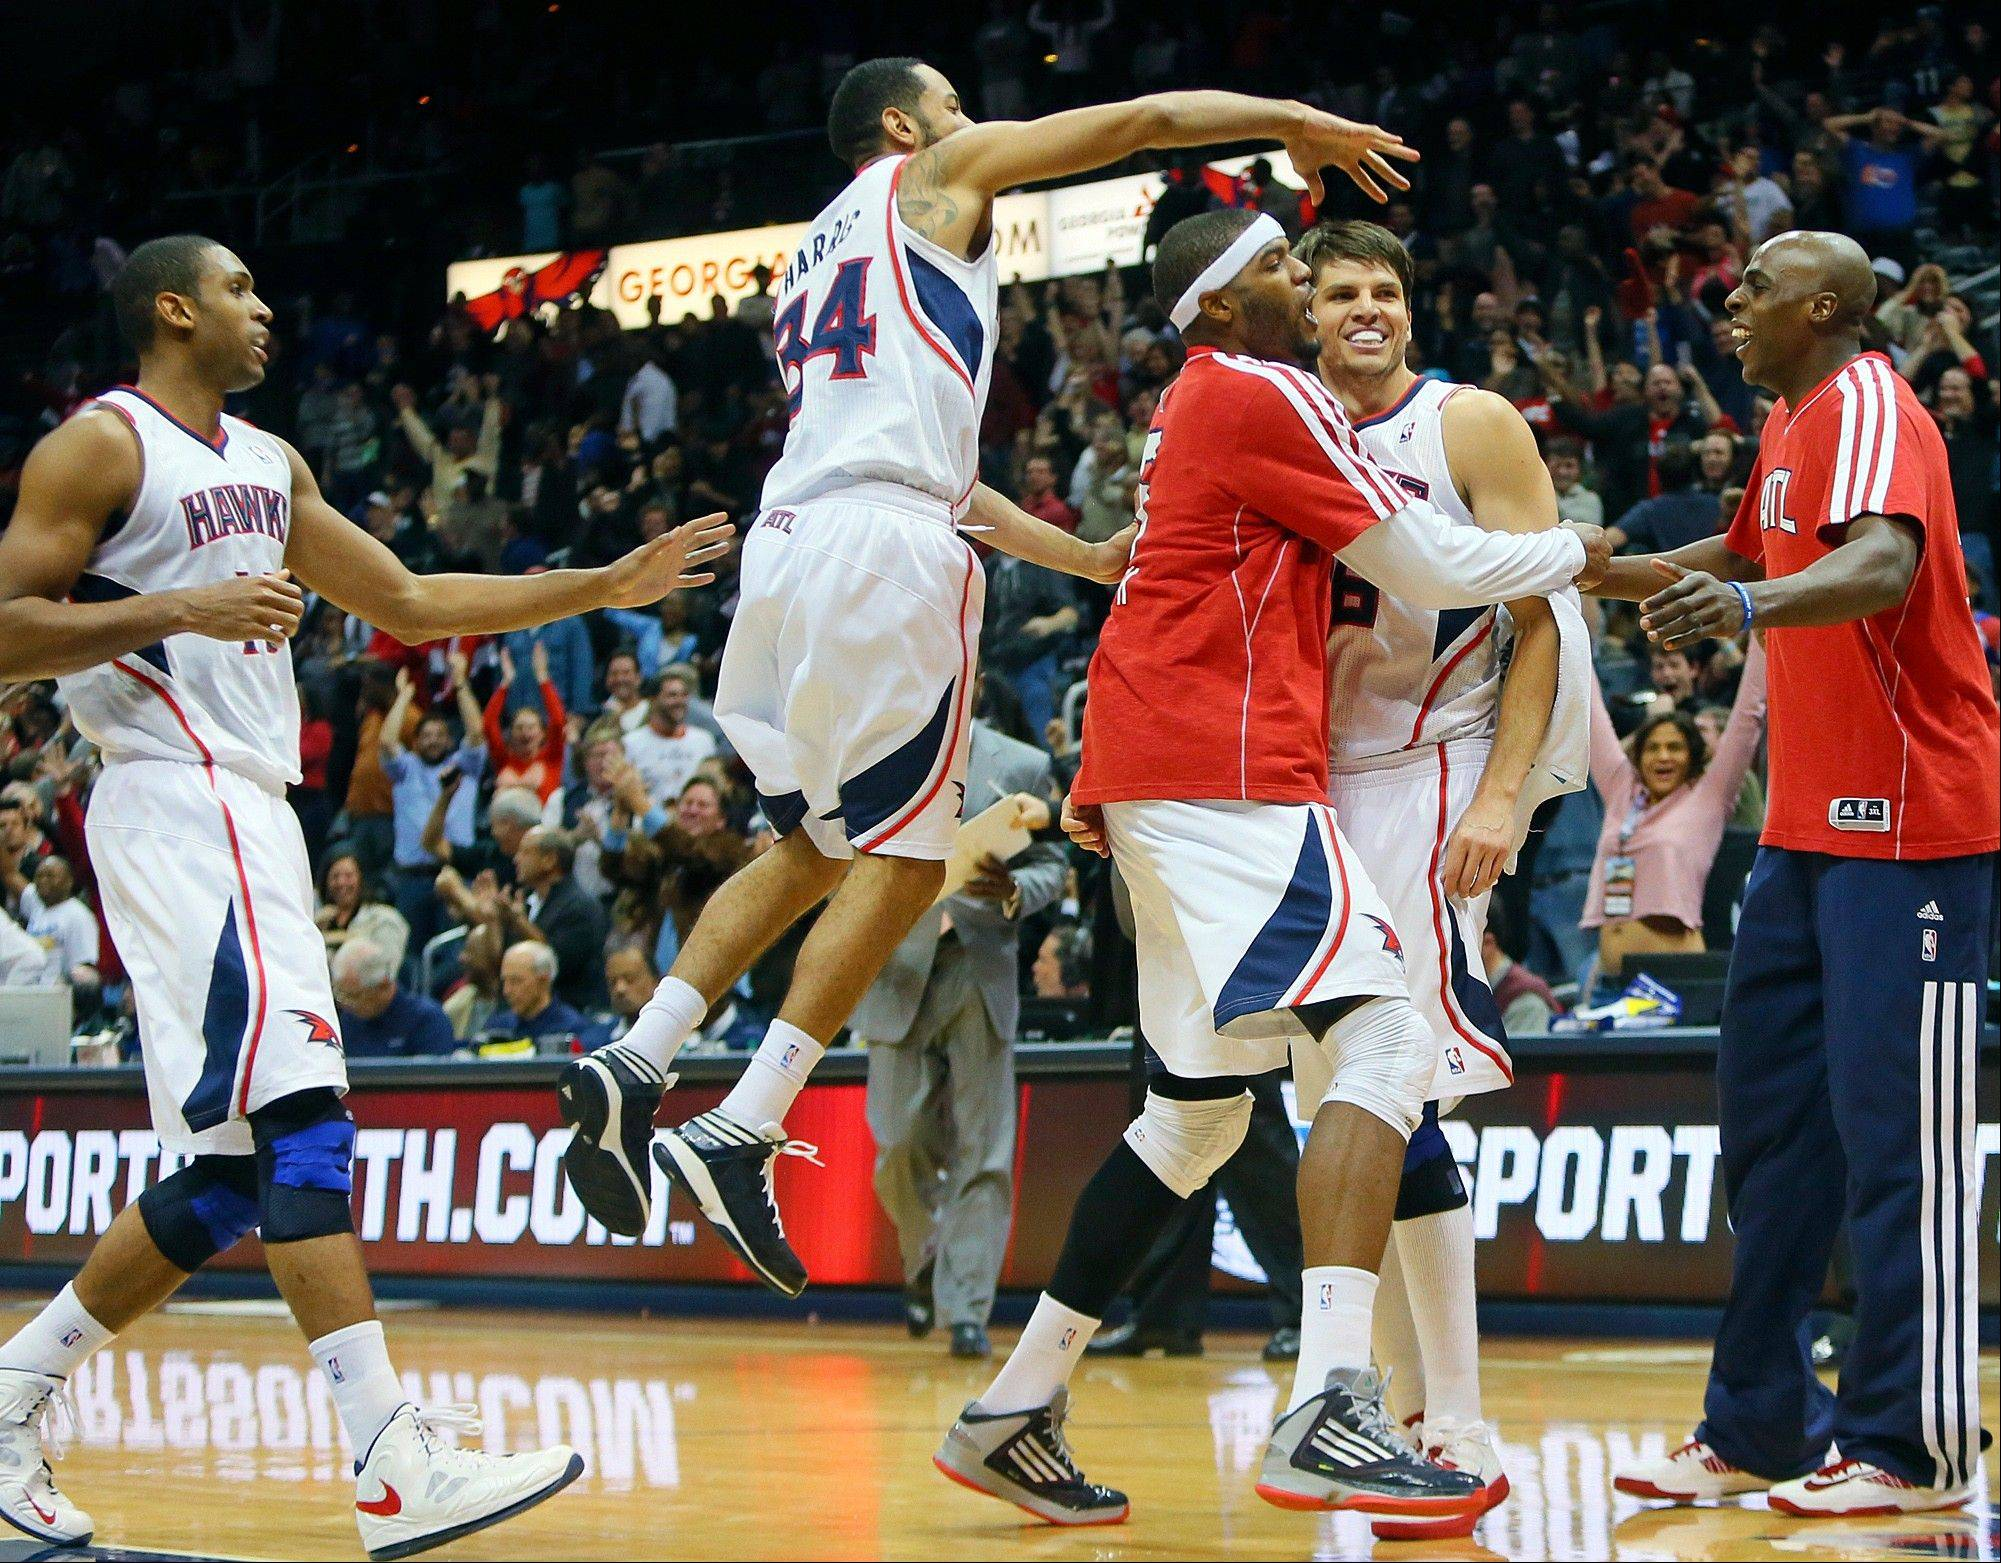 The Hawks� Josh Smith, third from right, grabs Kyle Korver, second from right, after Korver hit the winning 3-pointer against the Washington Wizards on Wednesday in Atlanta.